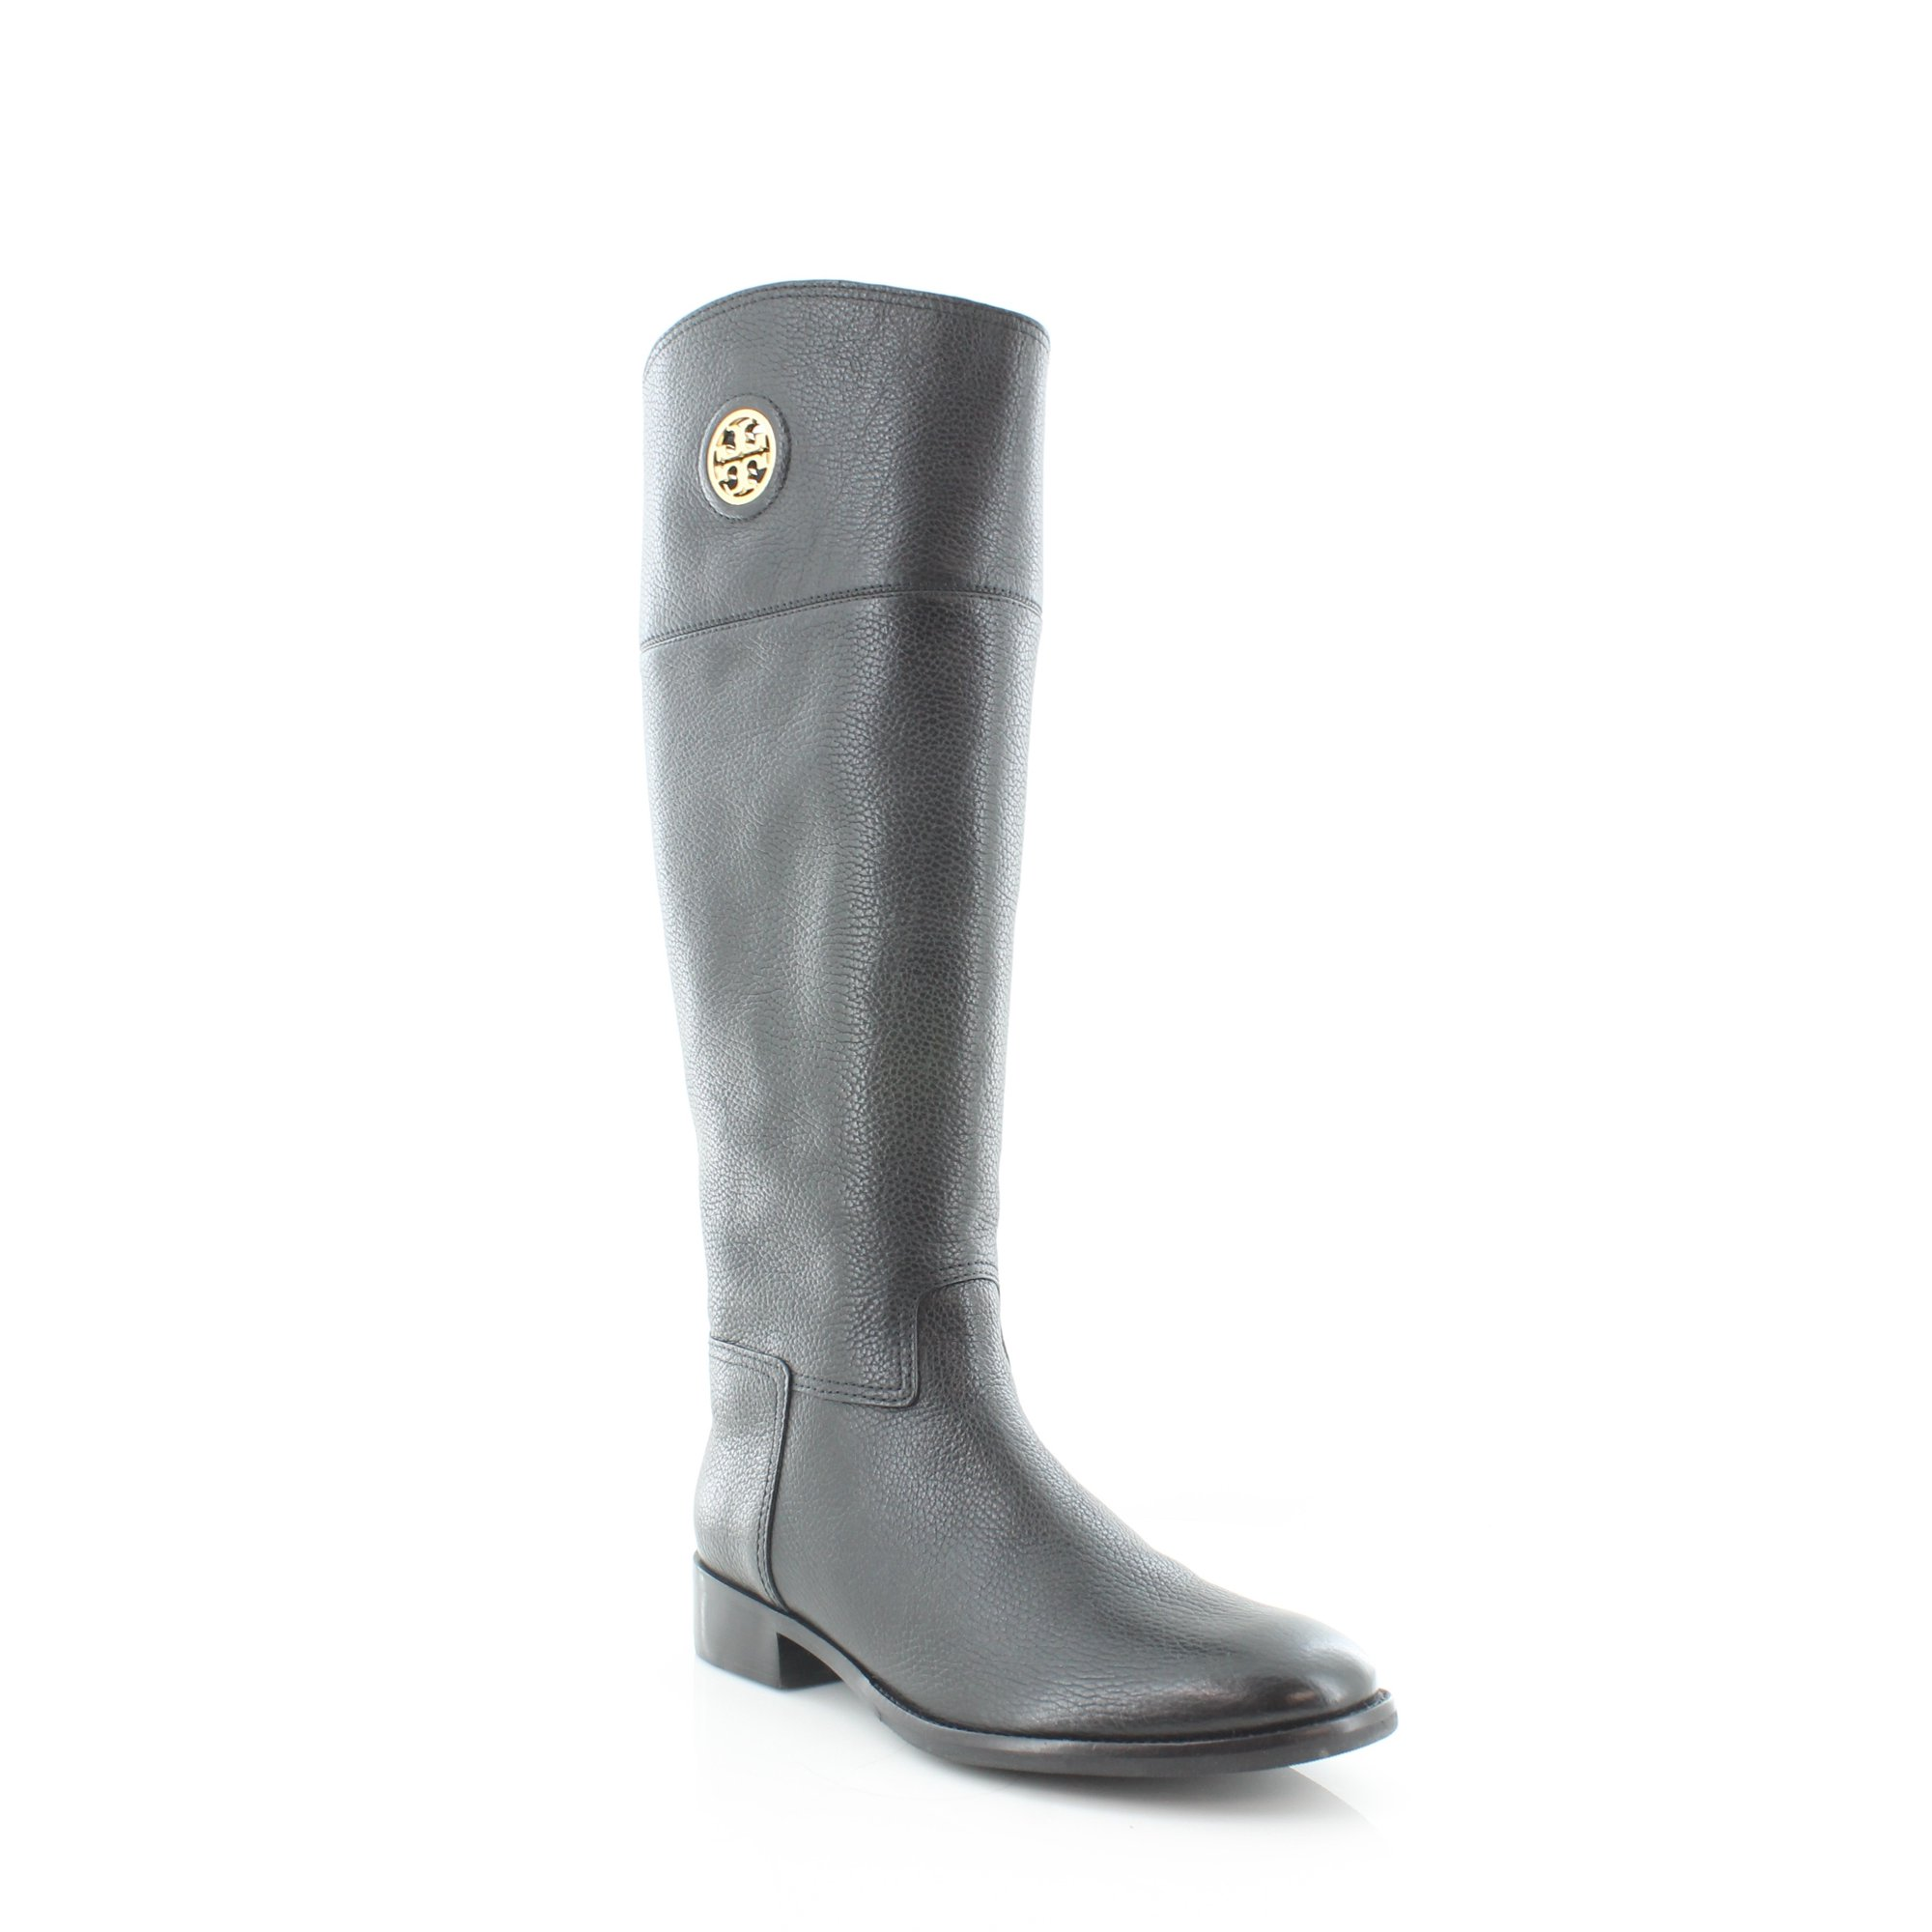 Buy Tory Burch Junction Riding Boot Women s Boots   Cheapest Tory ... 9d5a0a037a45